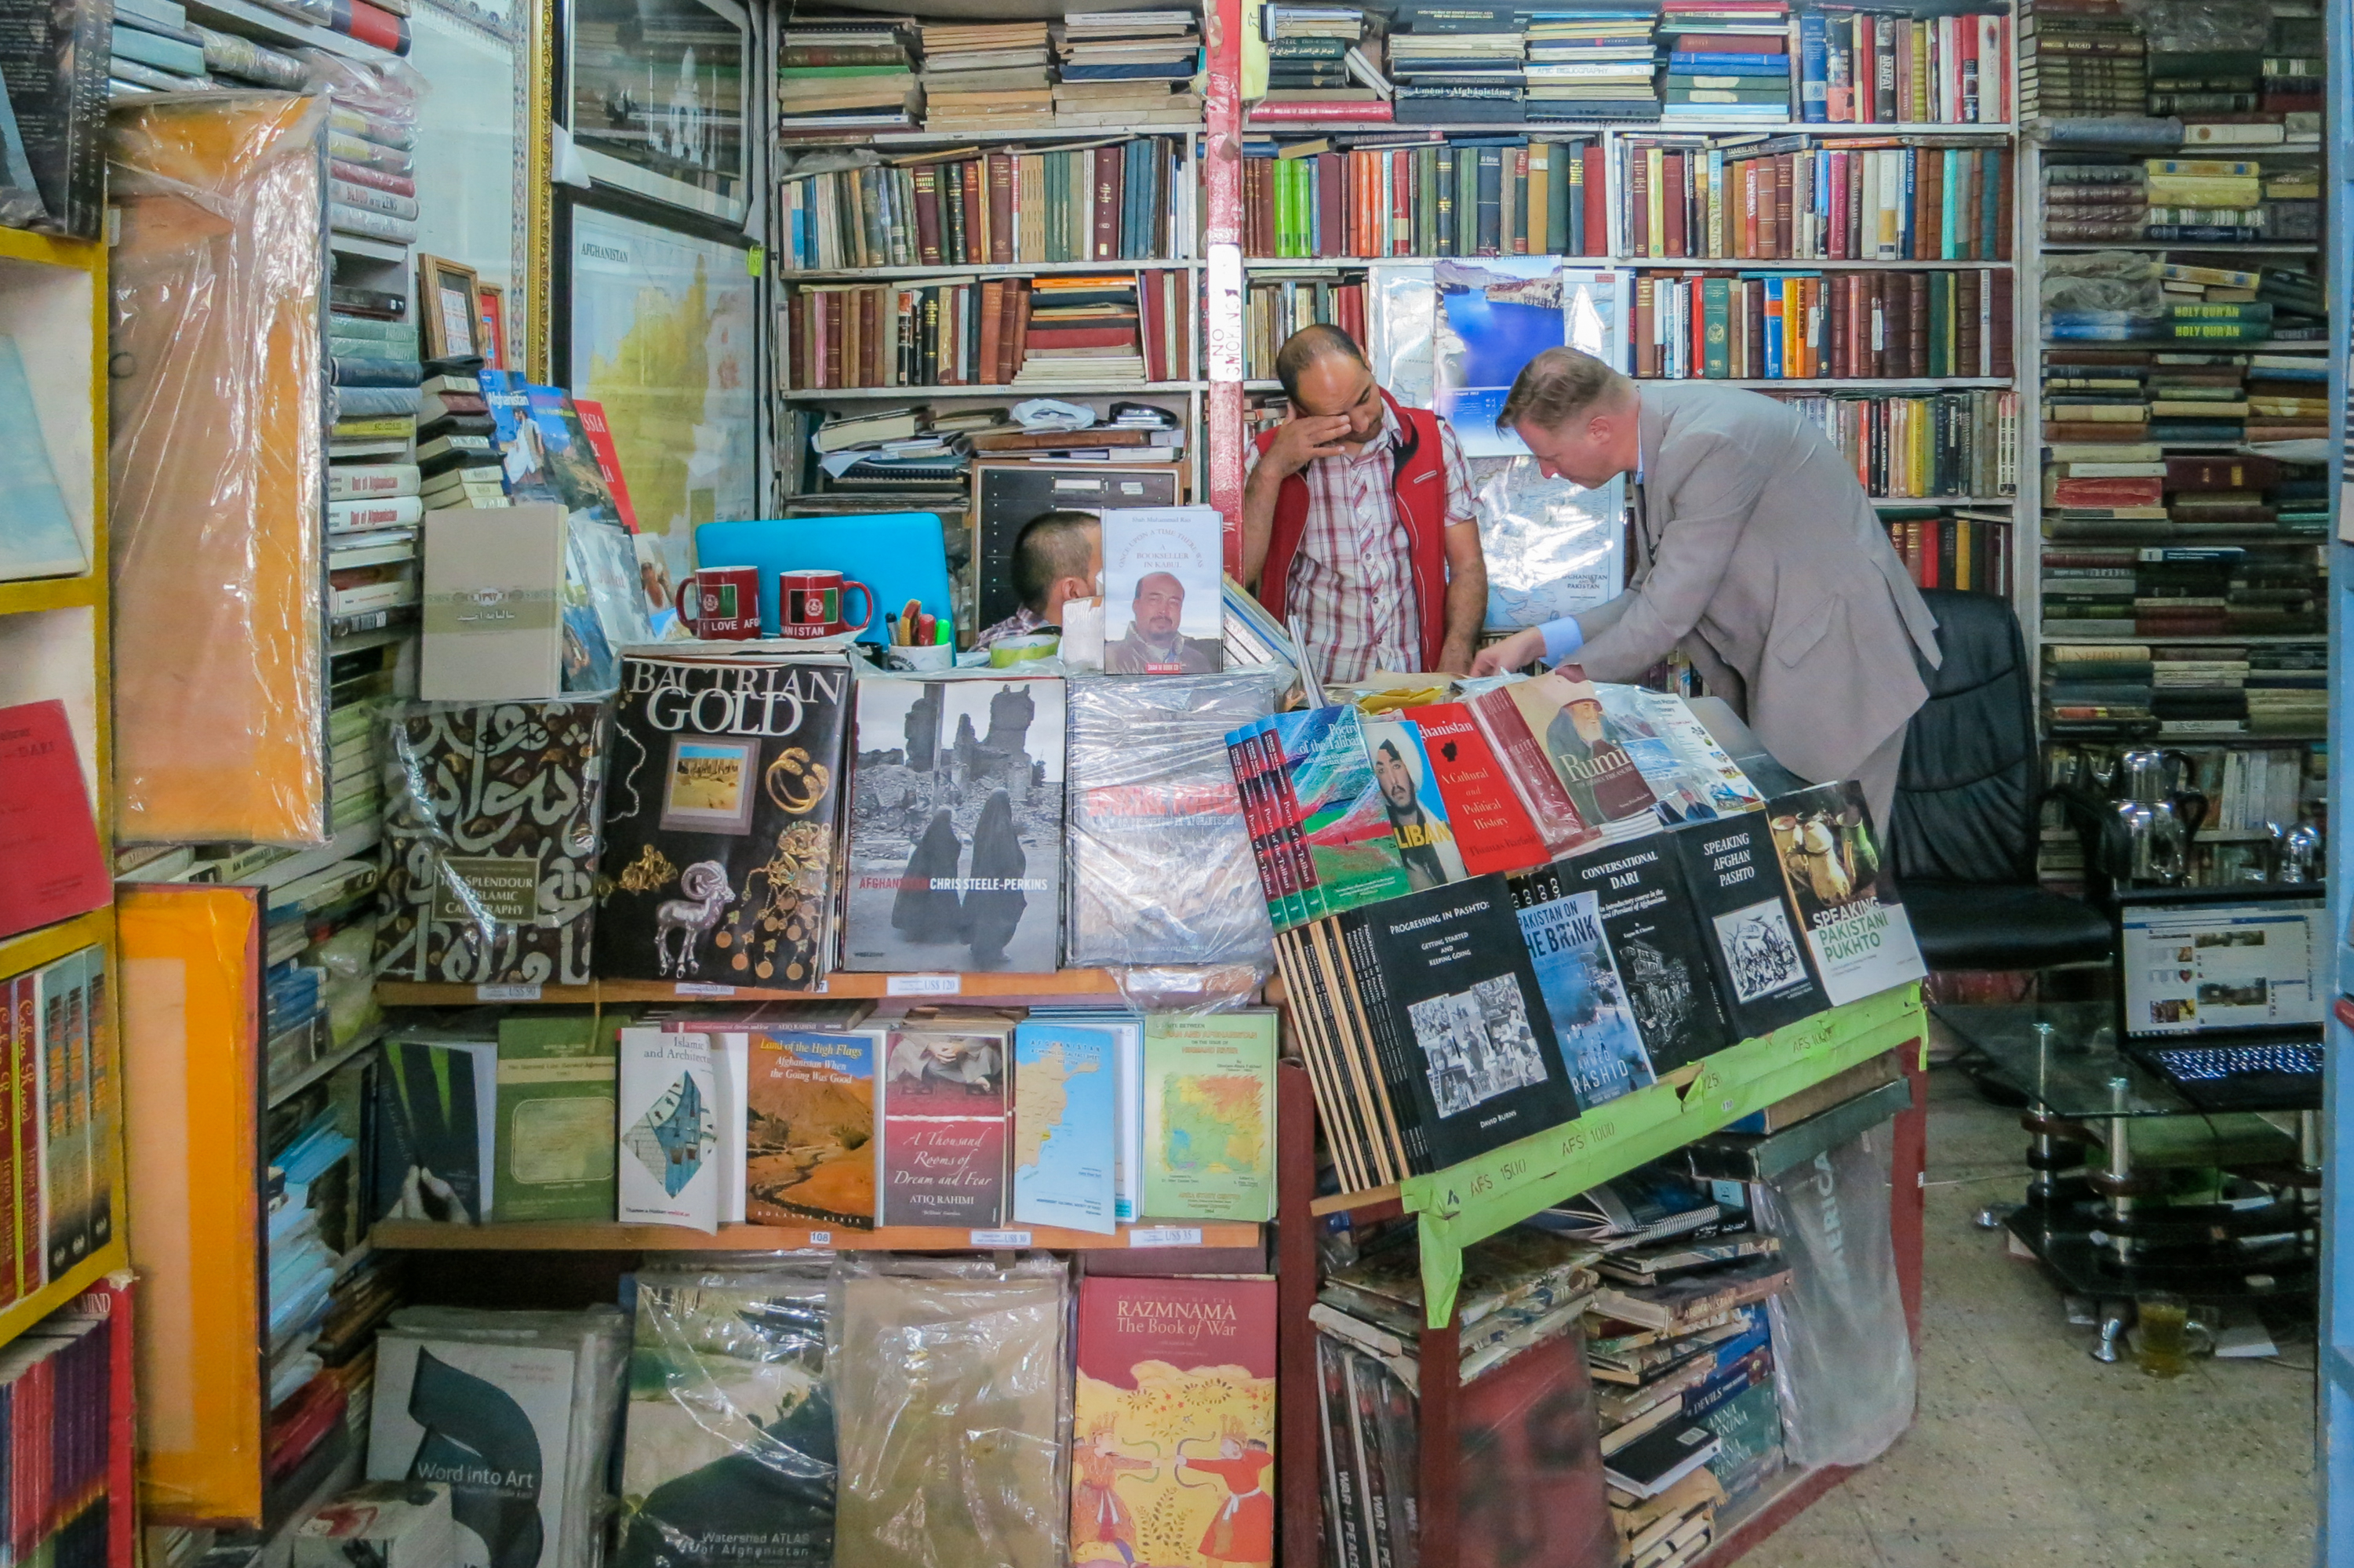 bookseller of kabul 9 quotes from the bookseller of kabul: 'when a man has everything and does not know what more to do, he tries to teach his donkey to talk.